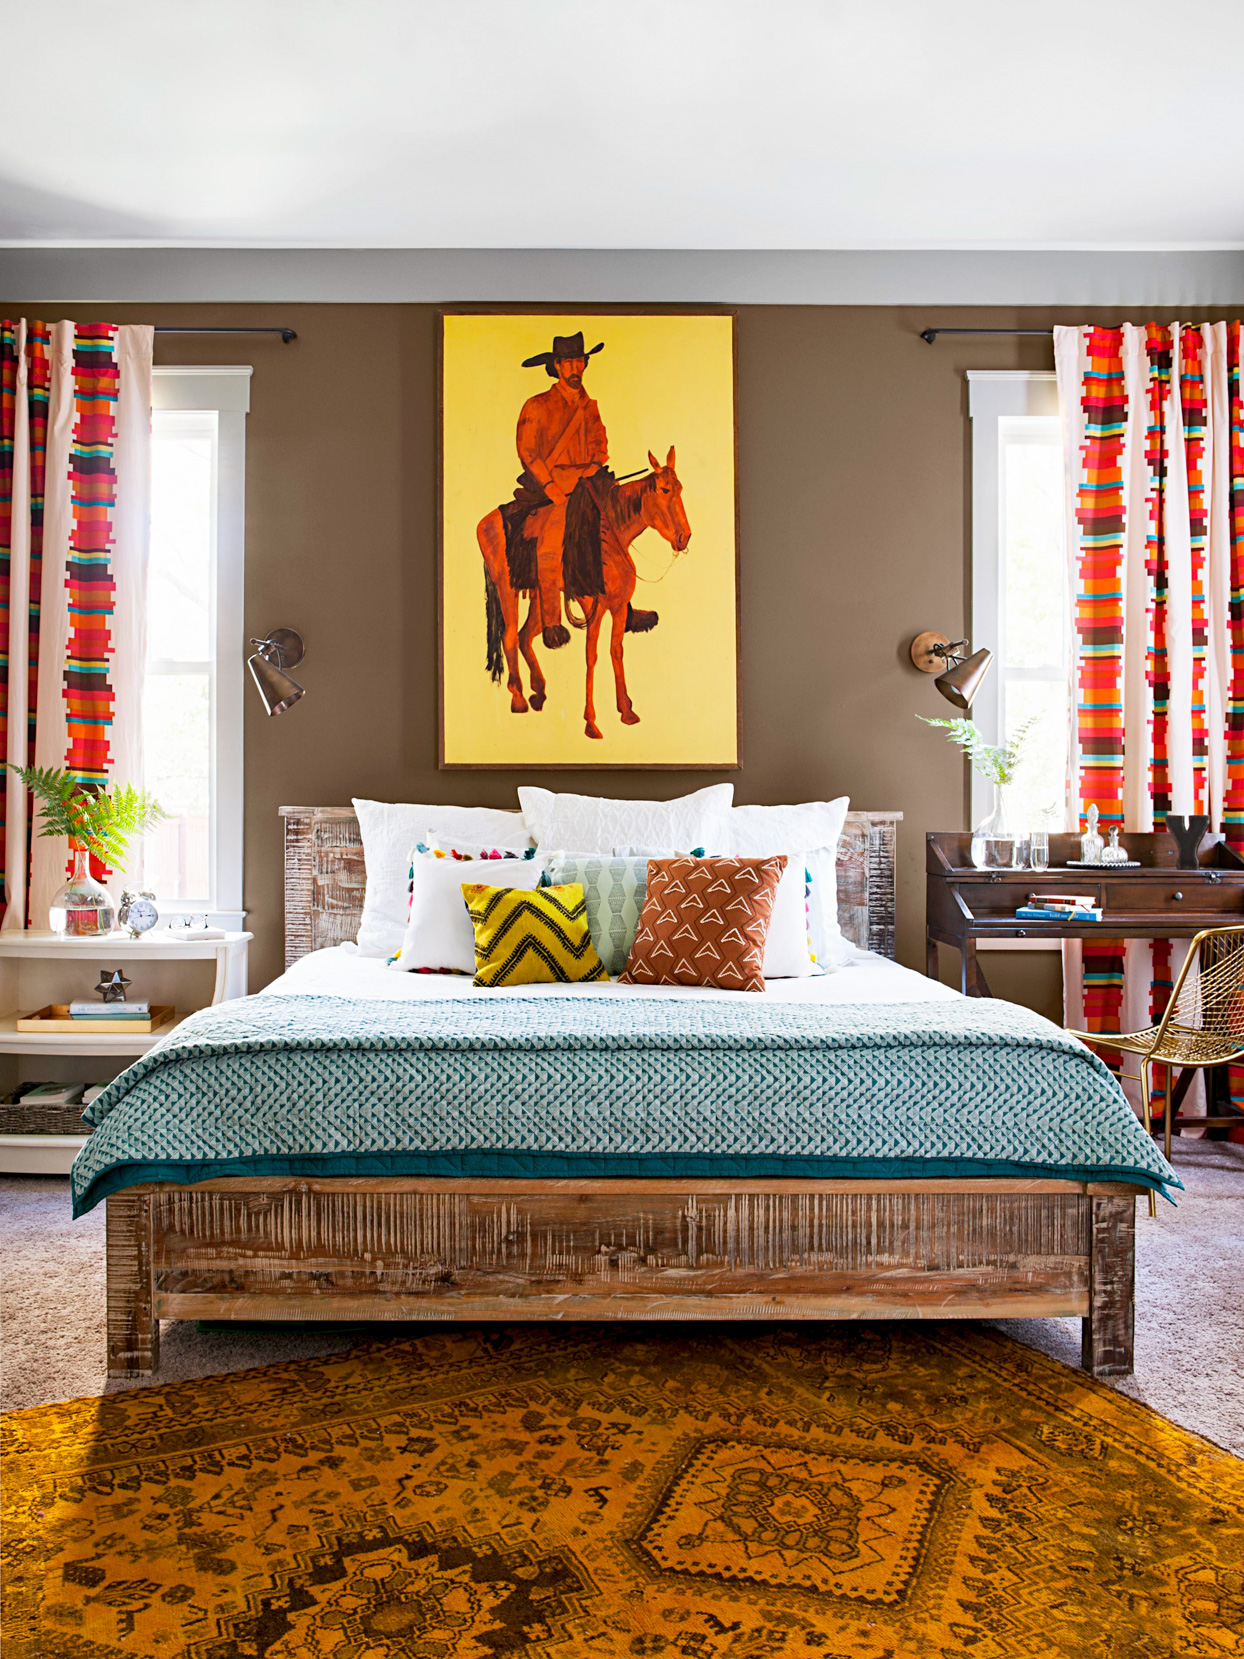 spanish style bedroom with red and blue décor